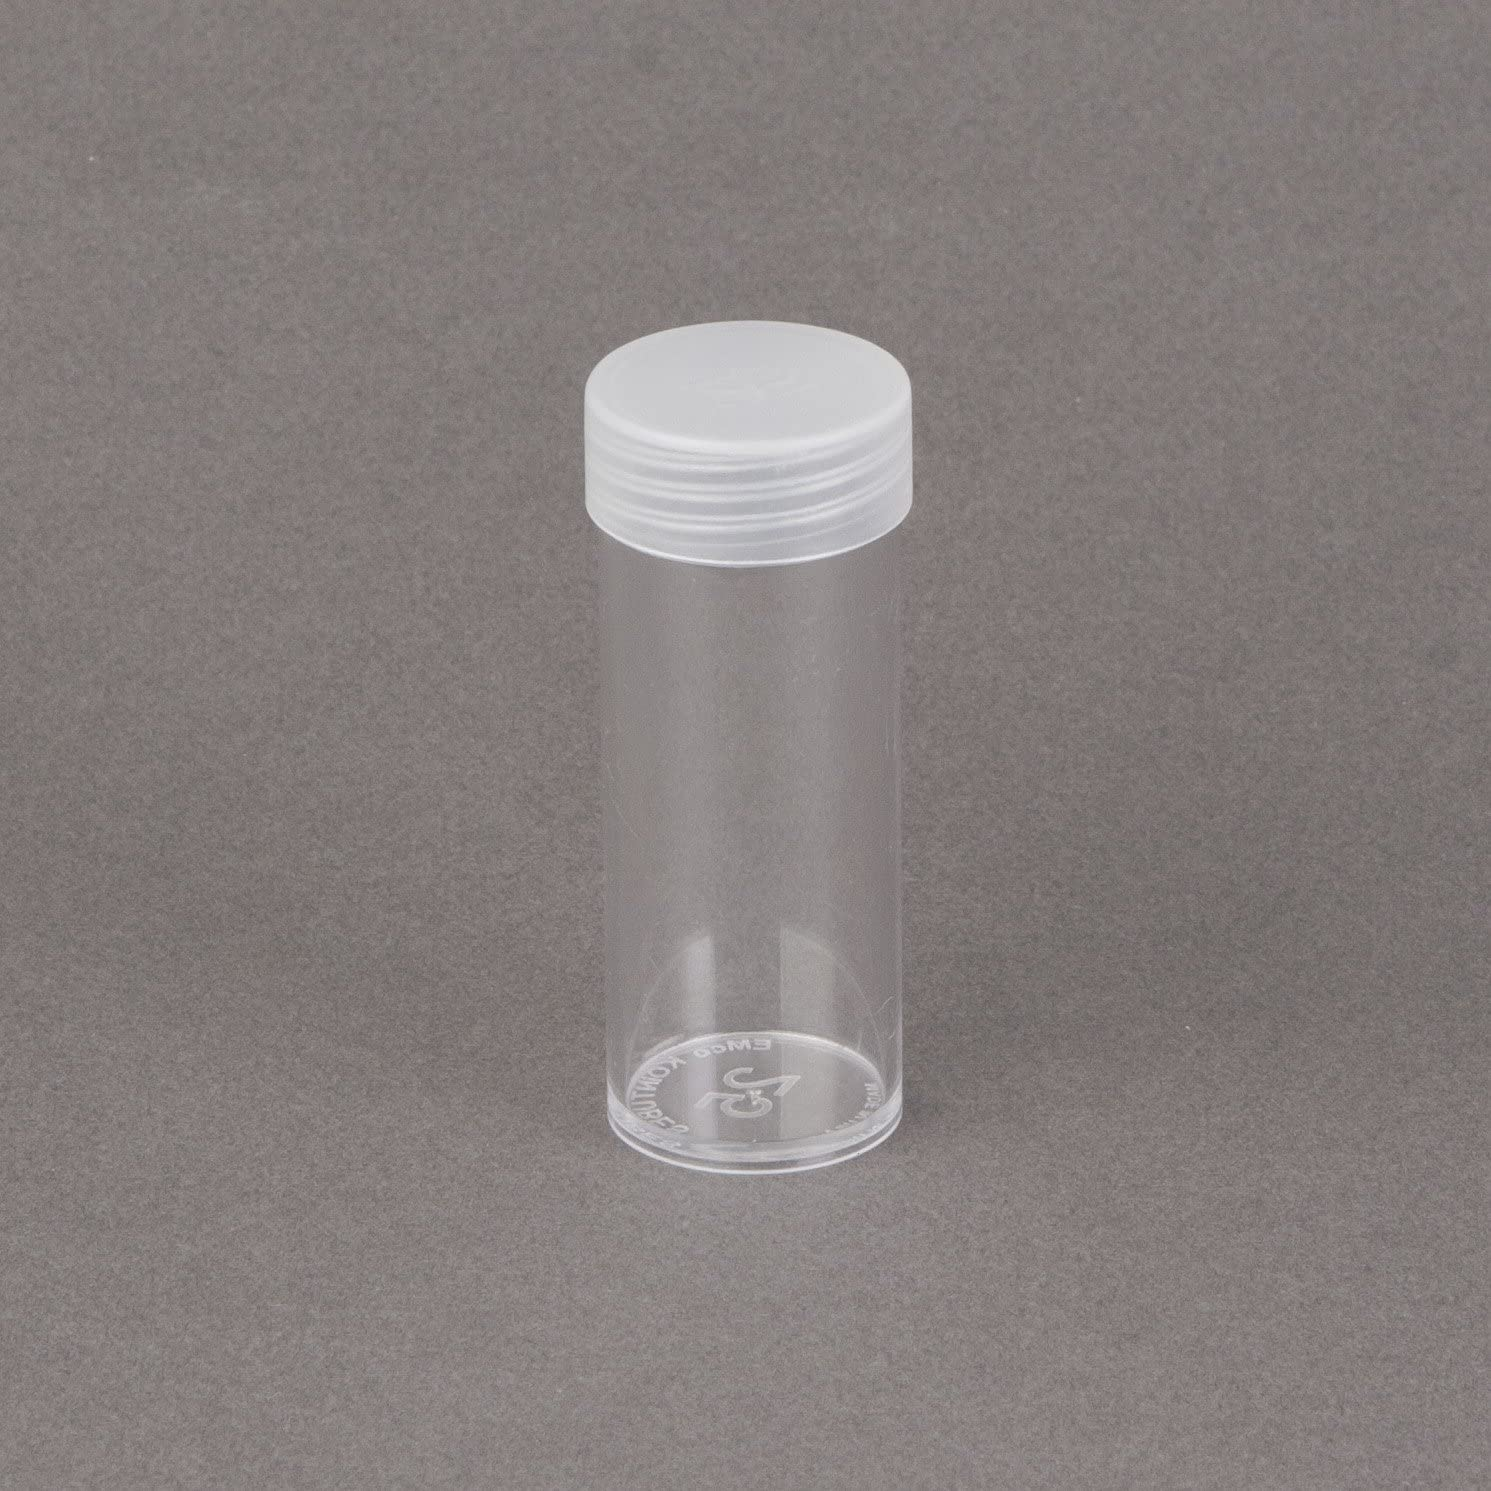 Quarter 5 Edgar Marcus Brand Round Clear Plastic Size Coin Storage Tube Holders with Screw on Lid